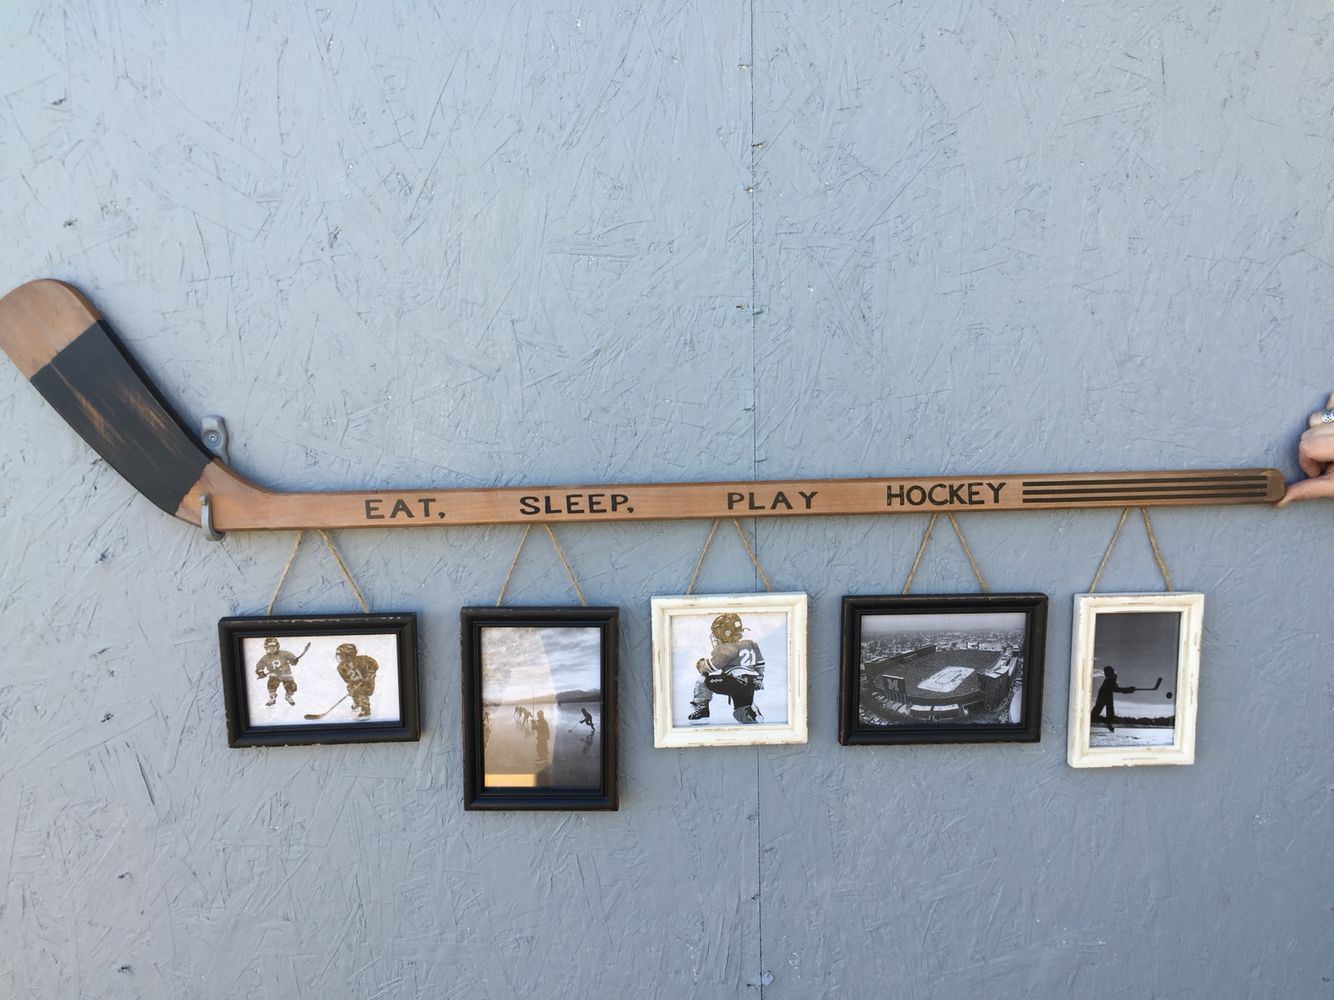 Boys hockey bedroom ideas - Retro Hockey Stick With 5 Hanging Frames 110 Sold Out